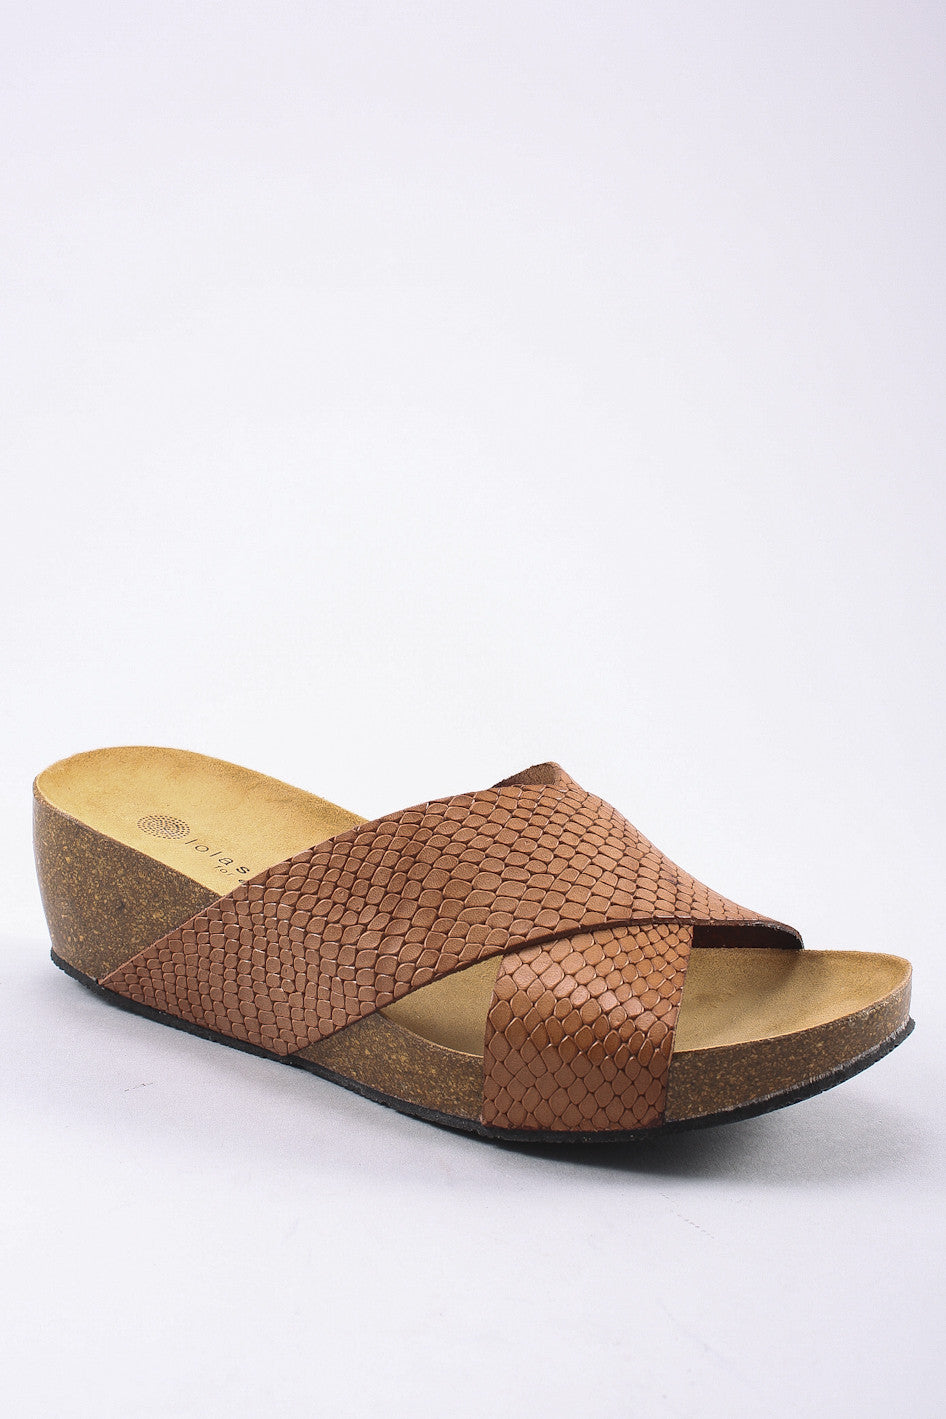 Violet Sandal in Brown